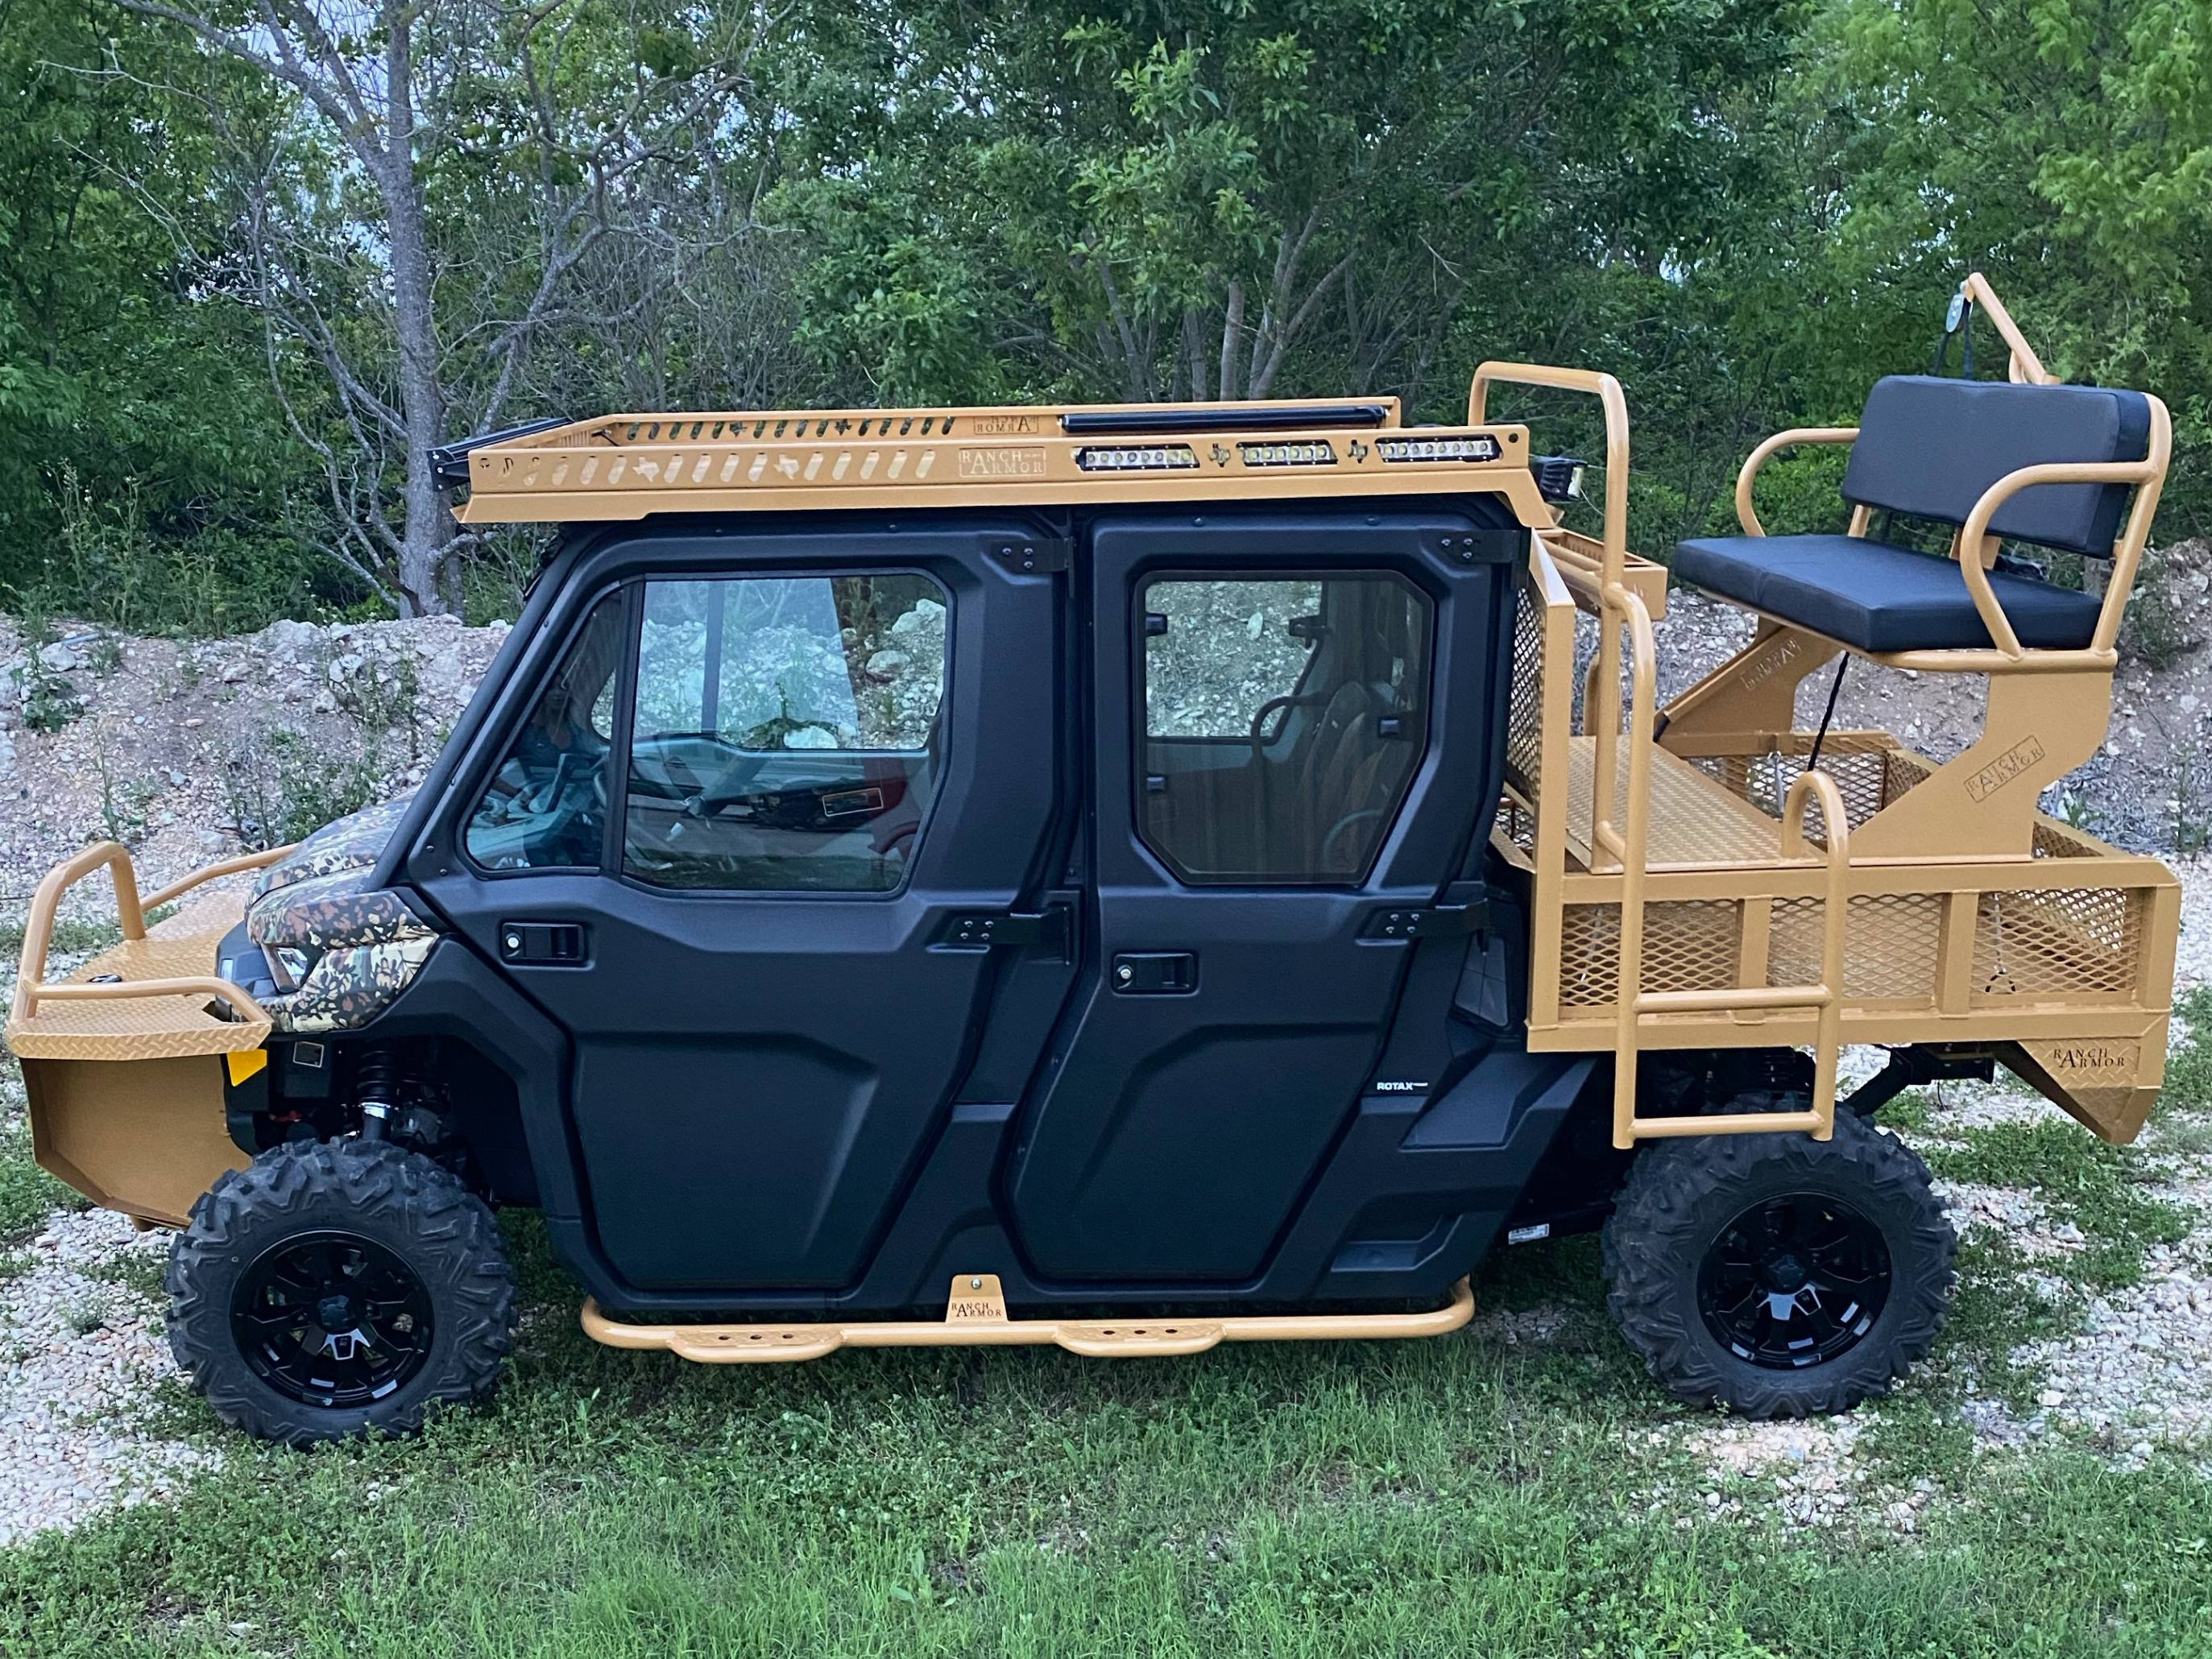 can-am-defender-limited-max-hvac-cab-outfit-metal-roof-high-seat-flat-bed-front-feeder-bumper-by-ranch-armor.jpg